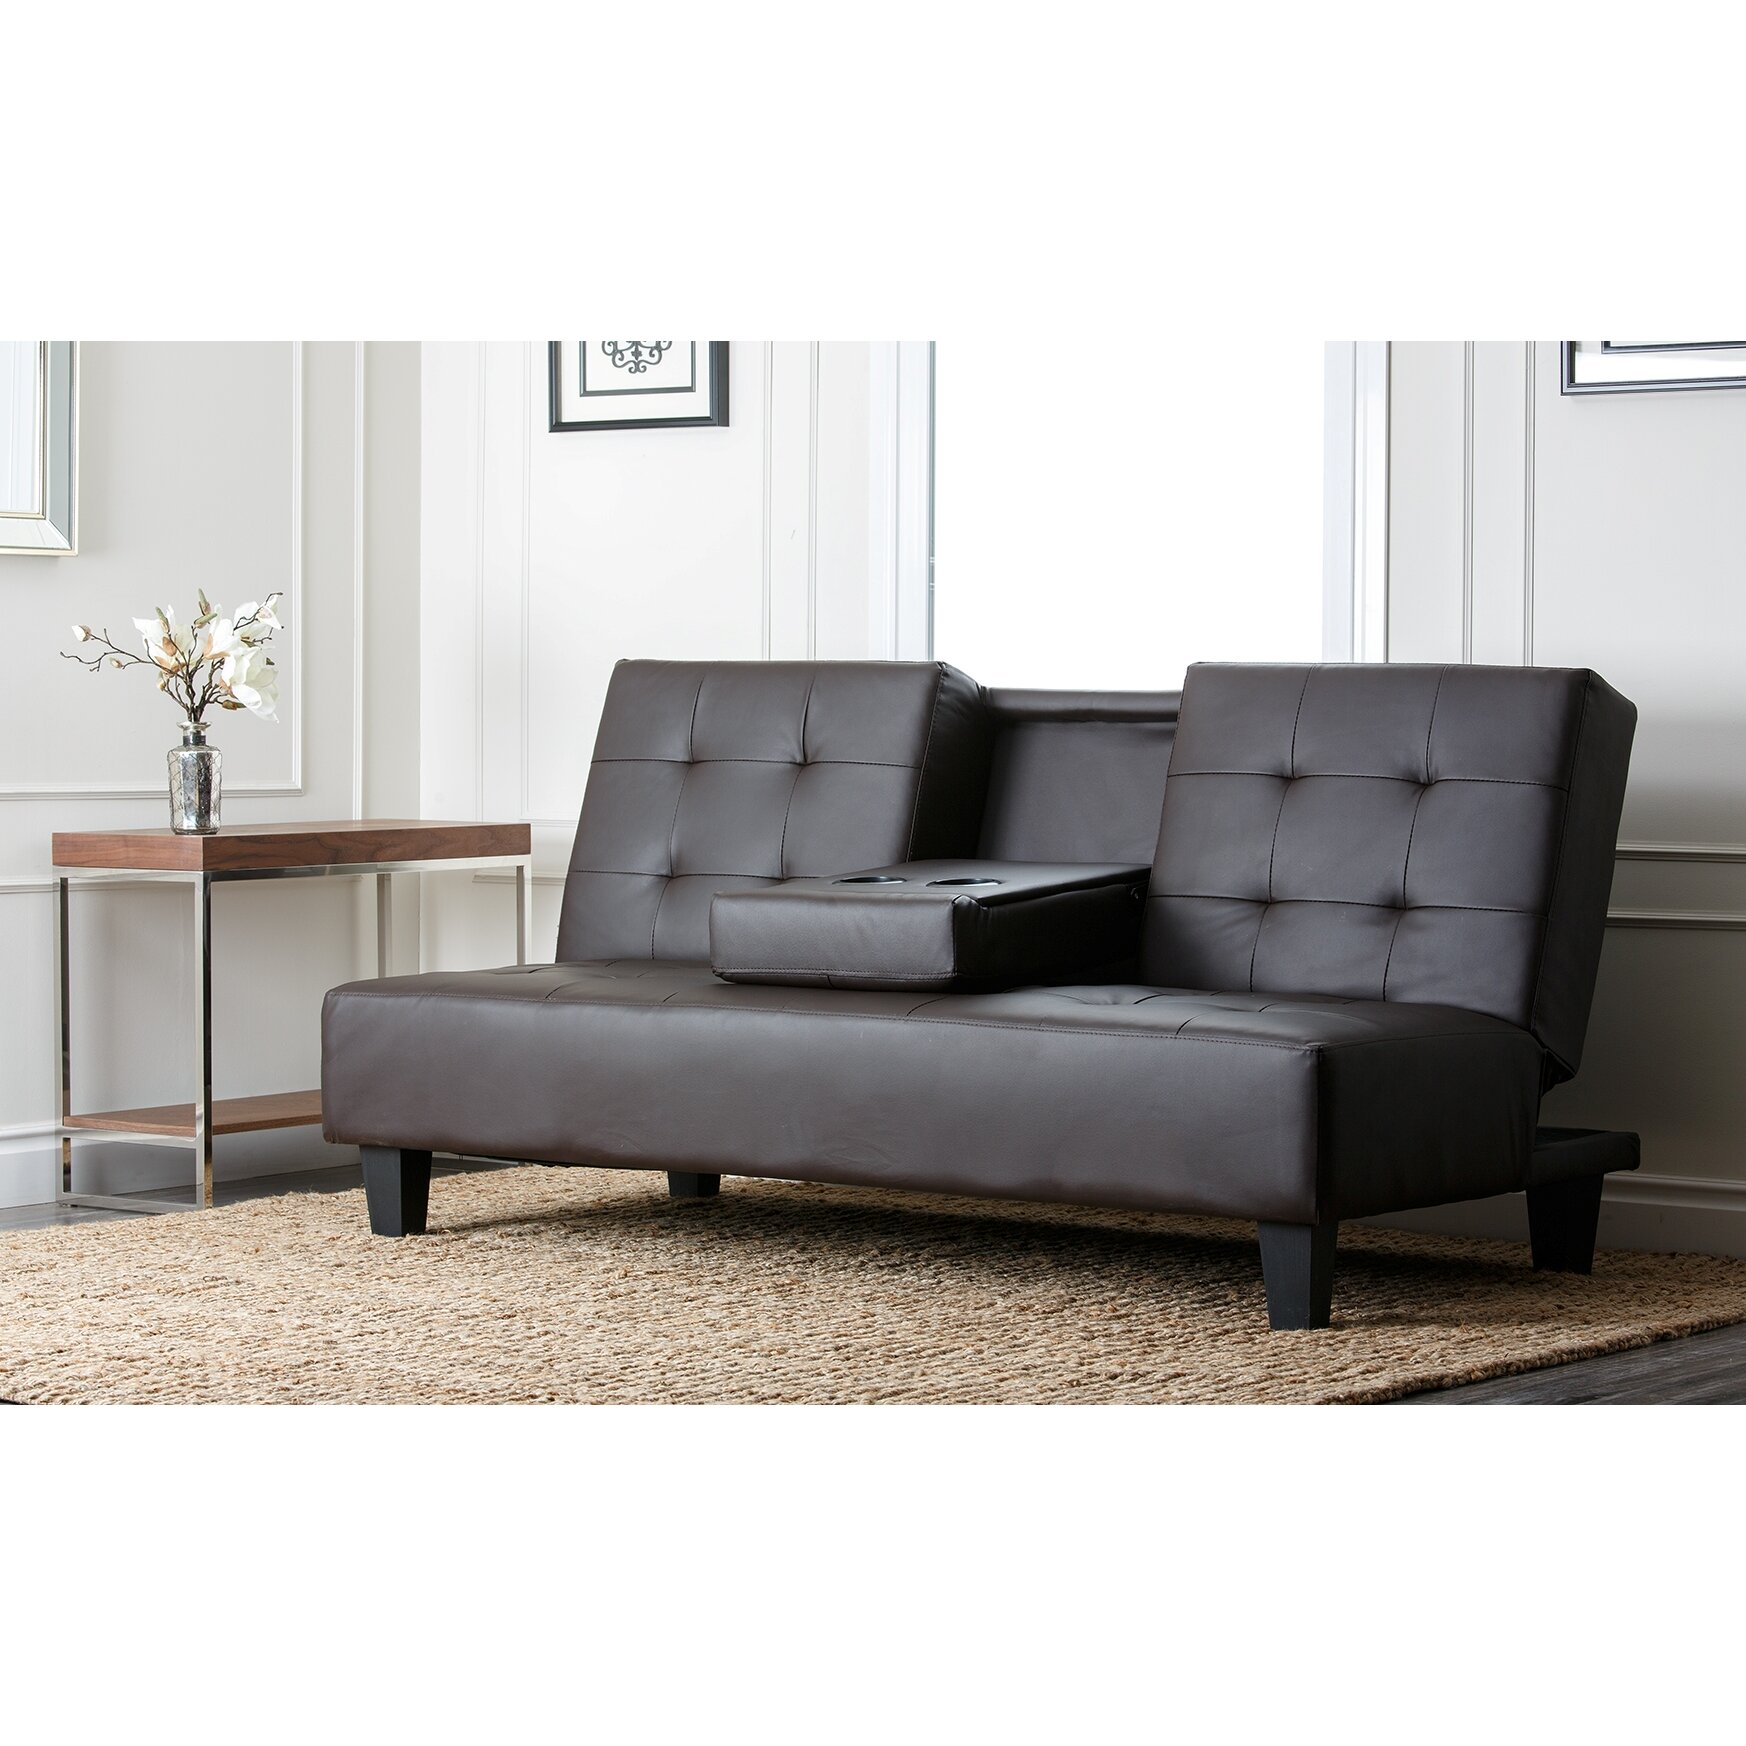 Abbyson Living Bedford Sleeper Sofa Reviews Wayfair